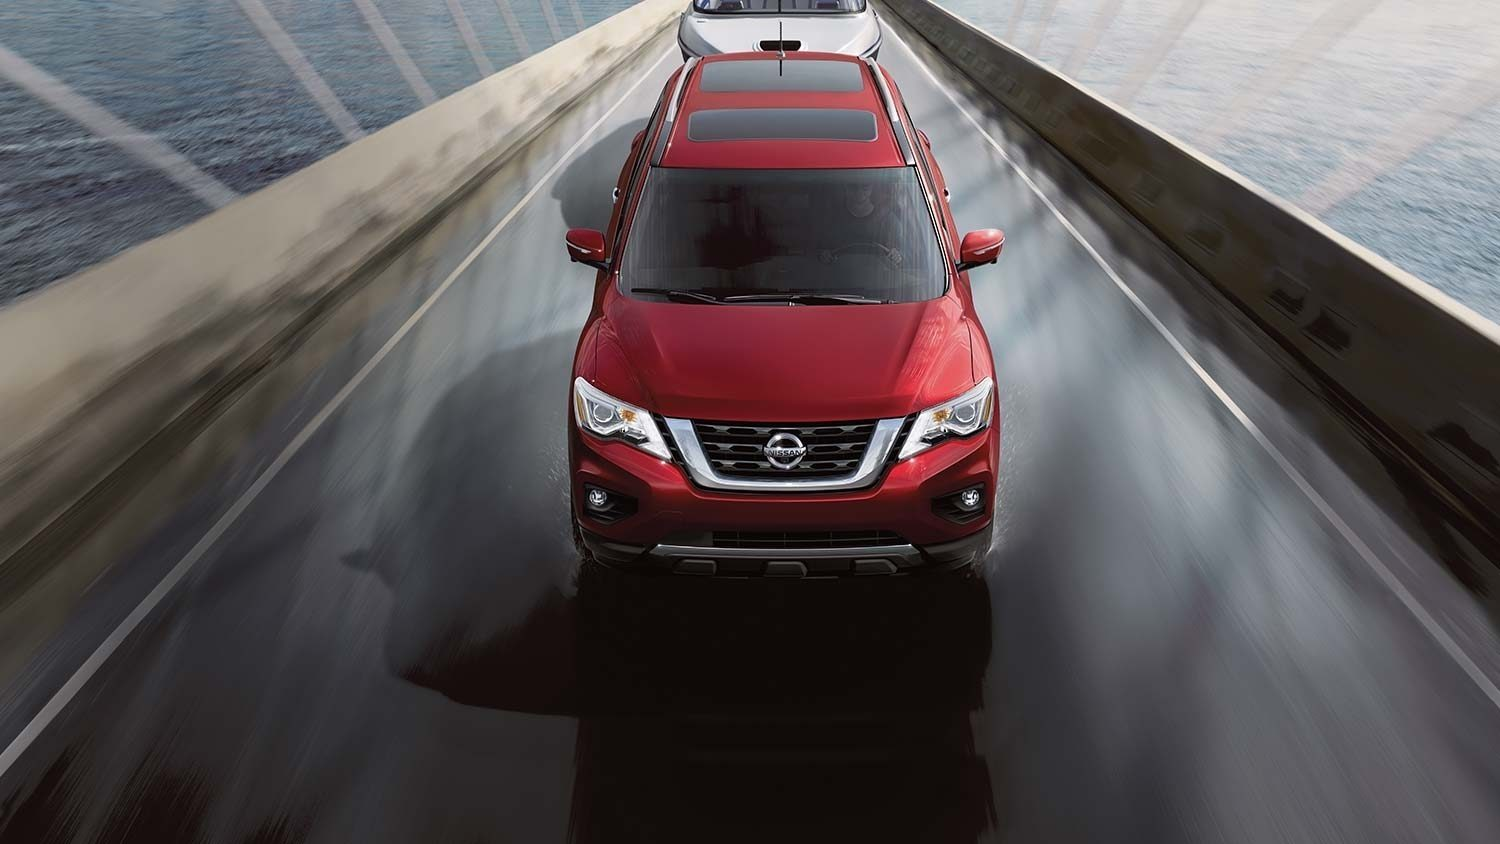 nissan pathfinder feb 2018